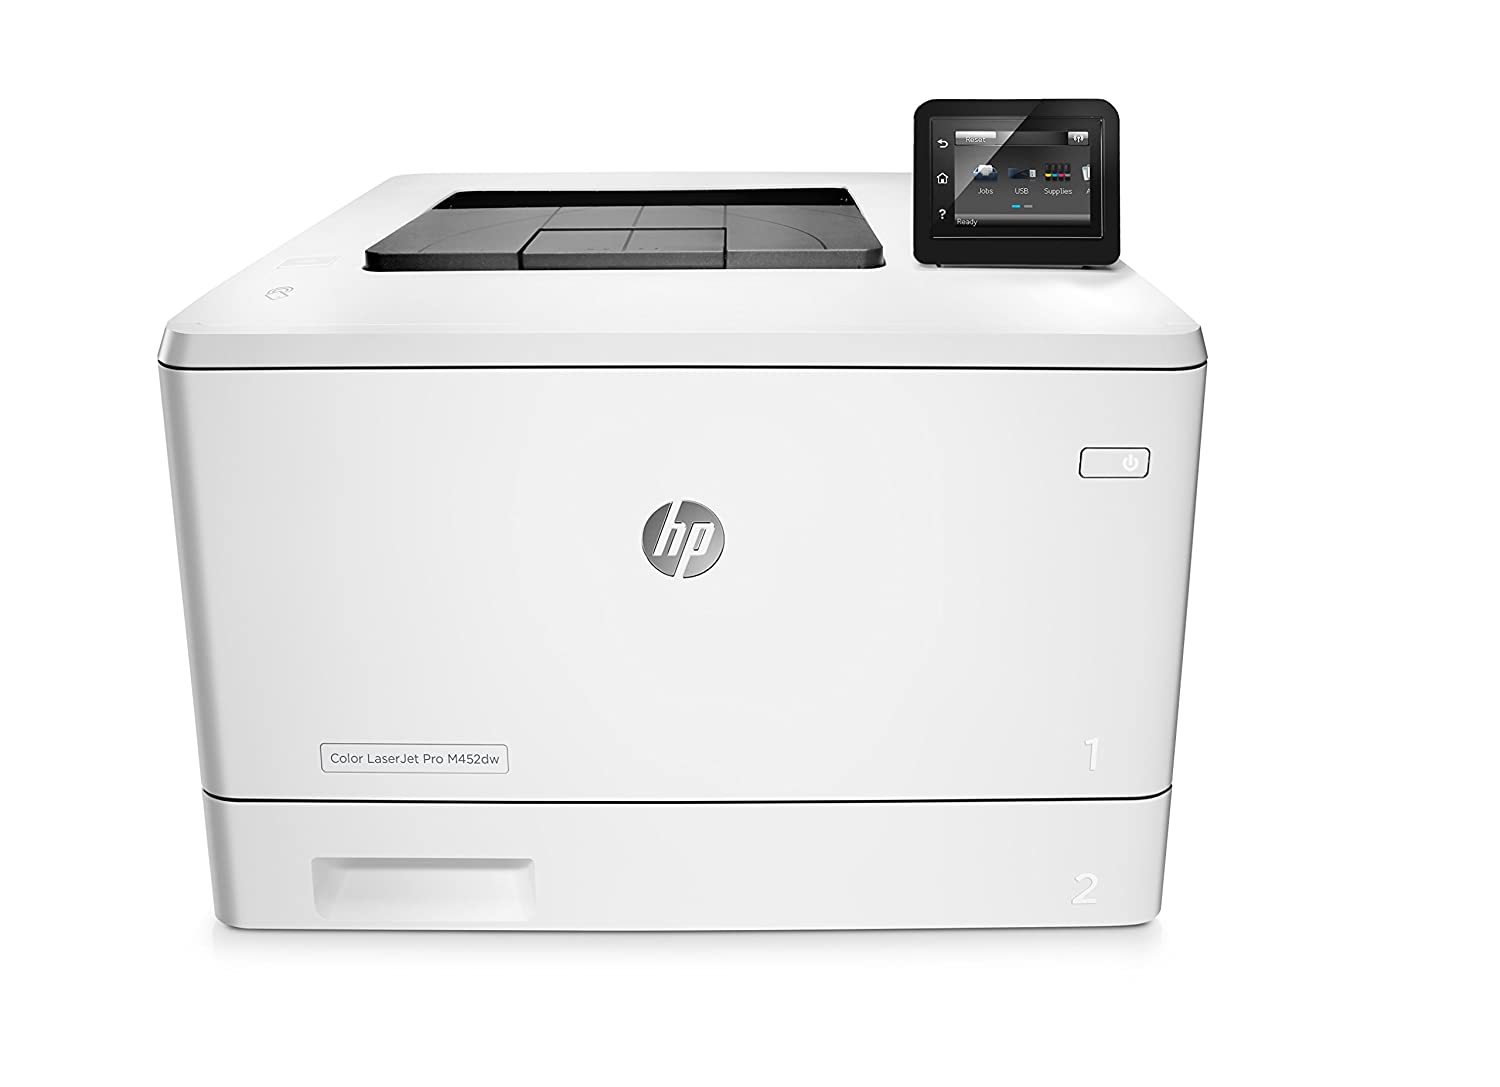 TOP 10 Best Printers For Heat Transfers - Reviews in 2019 9